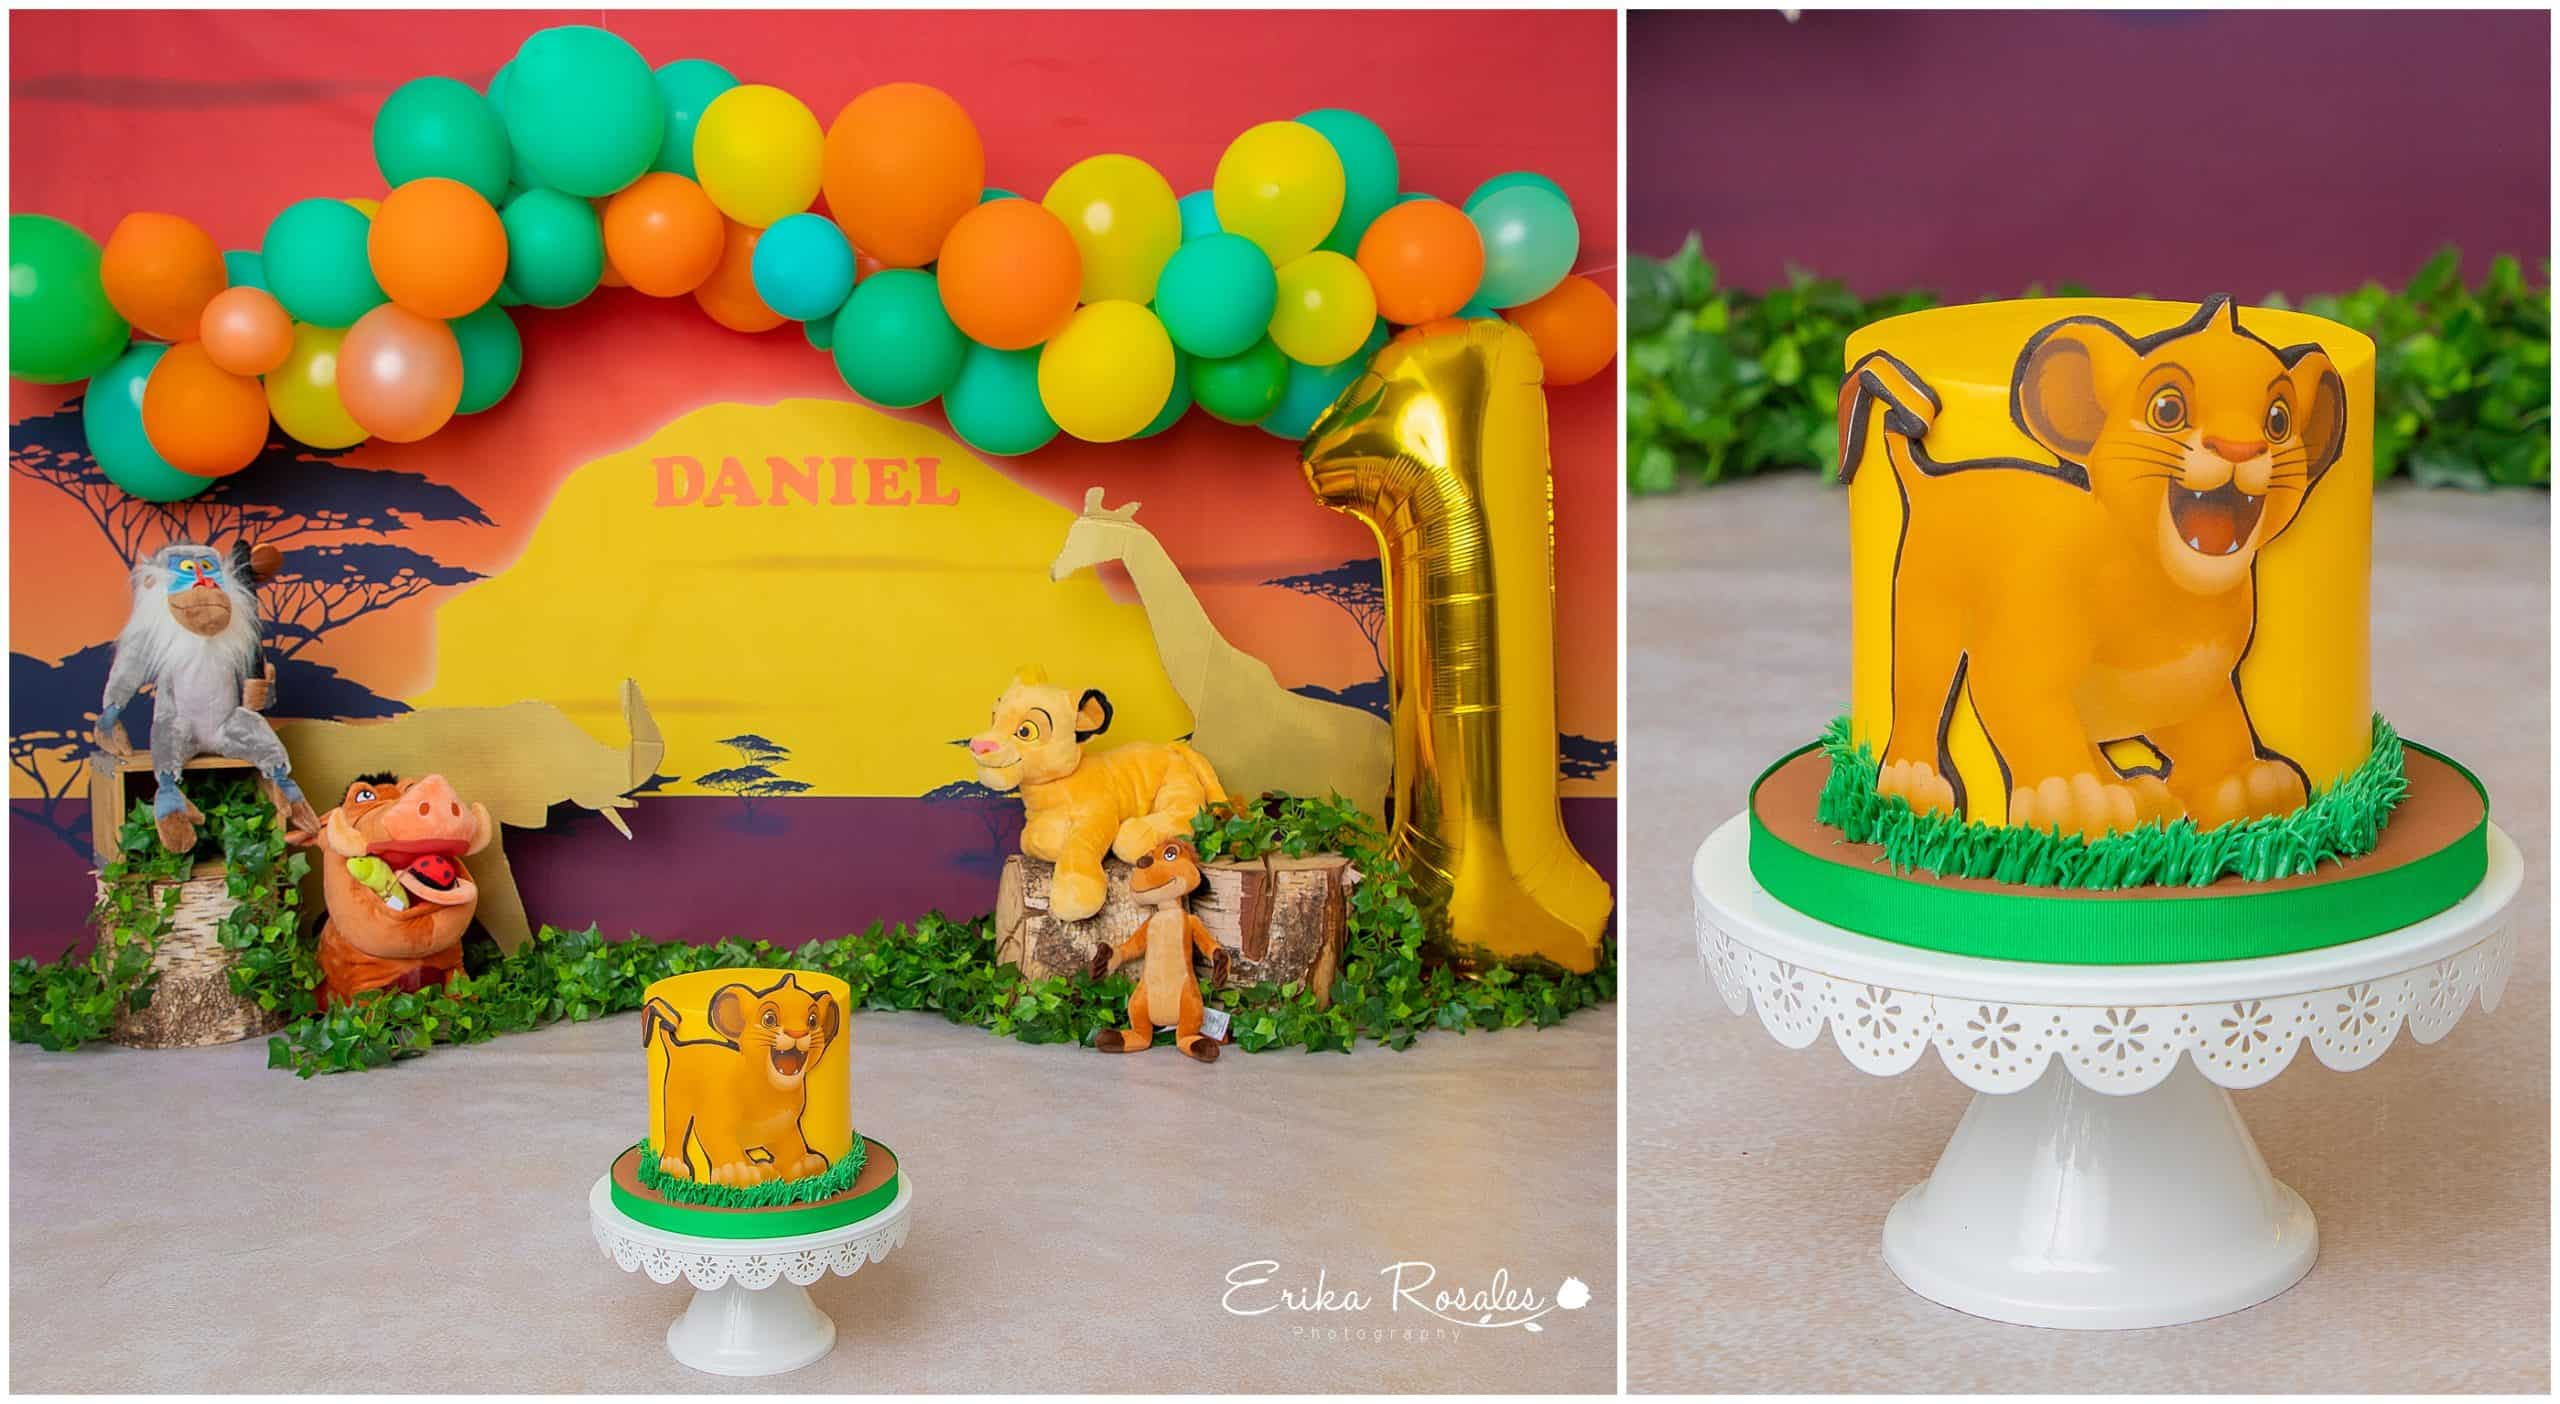 Sensational The Lion King First Birthday Cake Smash Archives Erika Rosales Funny Birthday Cards Online Fluifree Goldxyz